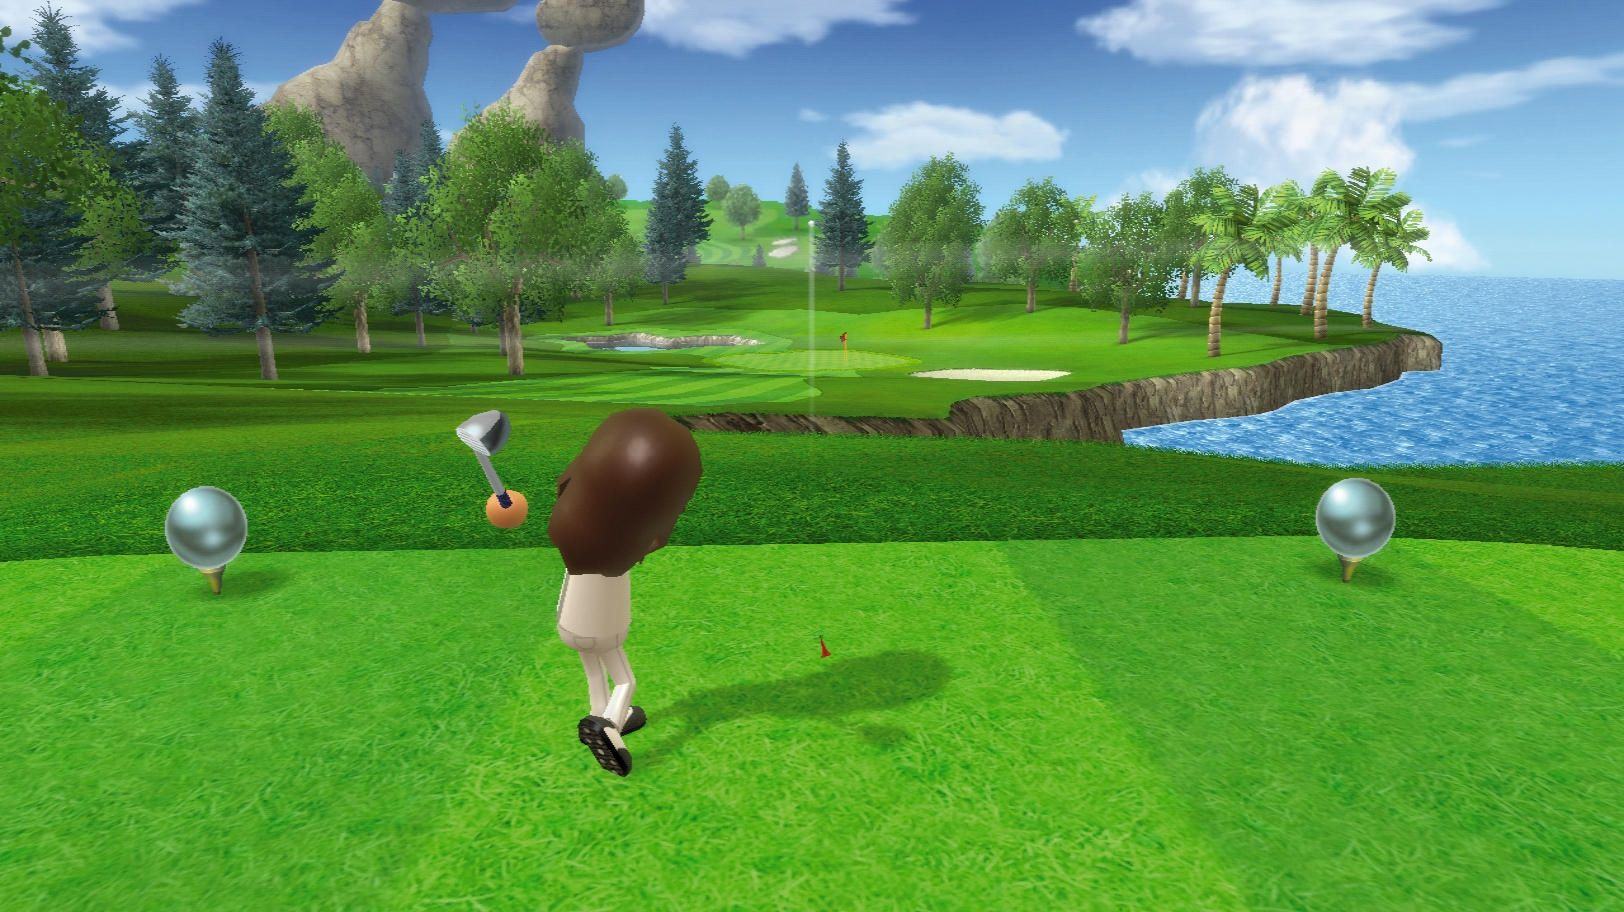 Pin by Ginger Sterling on Wii for Eli Golf, Golf courses